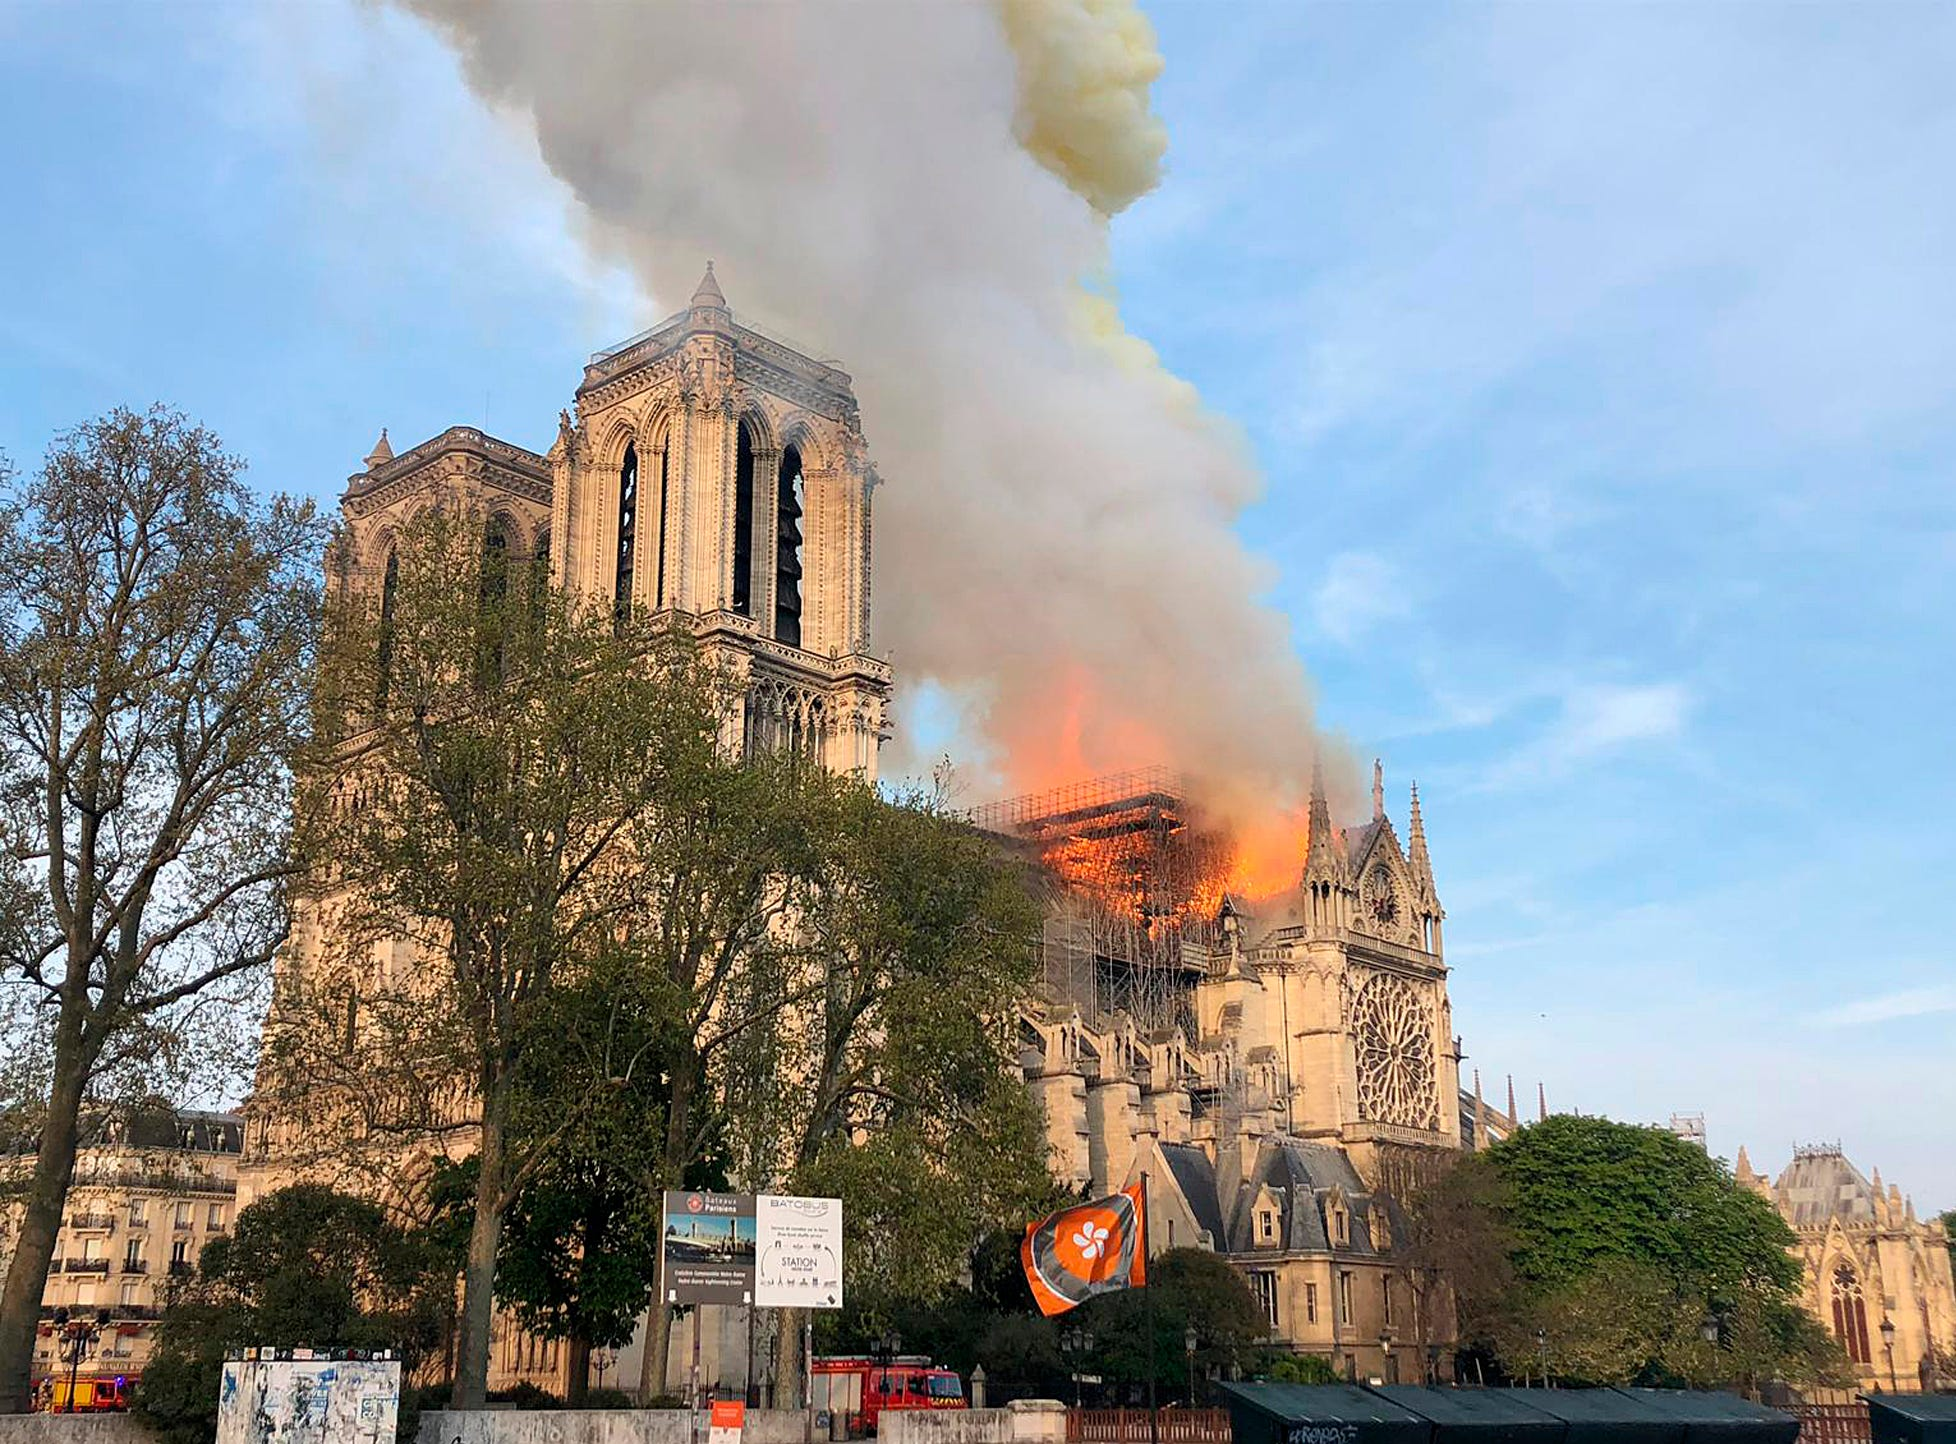 Travelers express shock, horror over Notre Dame fire, share memories of their visits